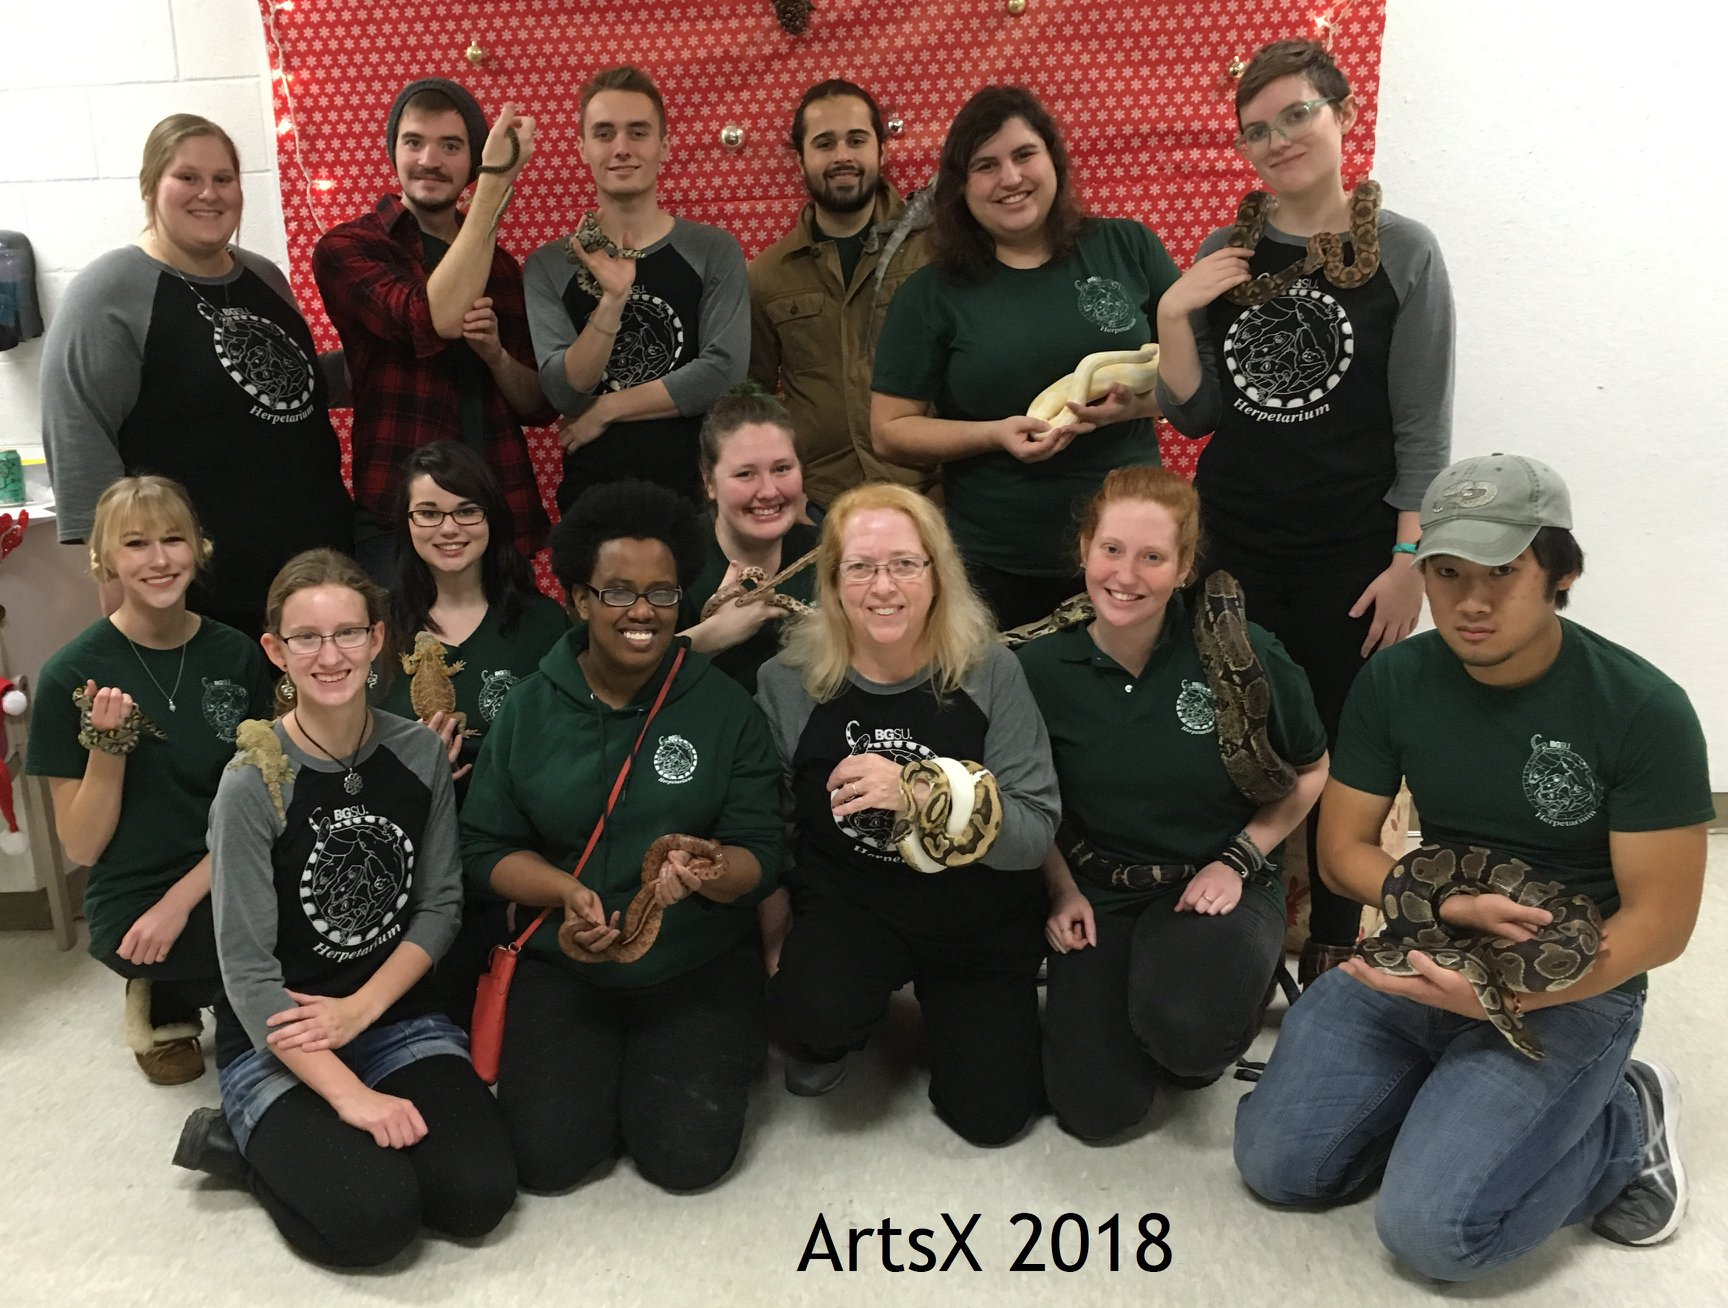 Herpetology students join with art students at ArtsX 2018